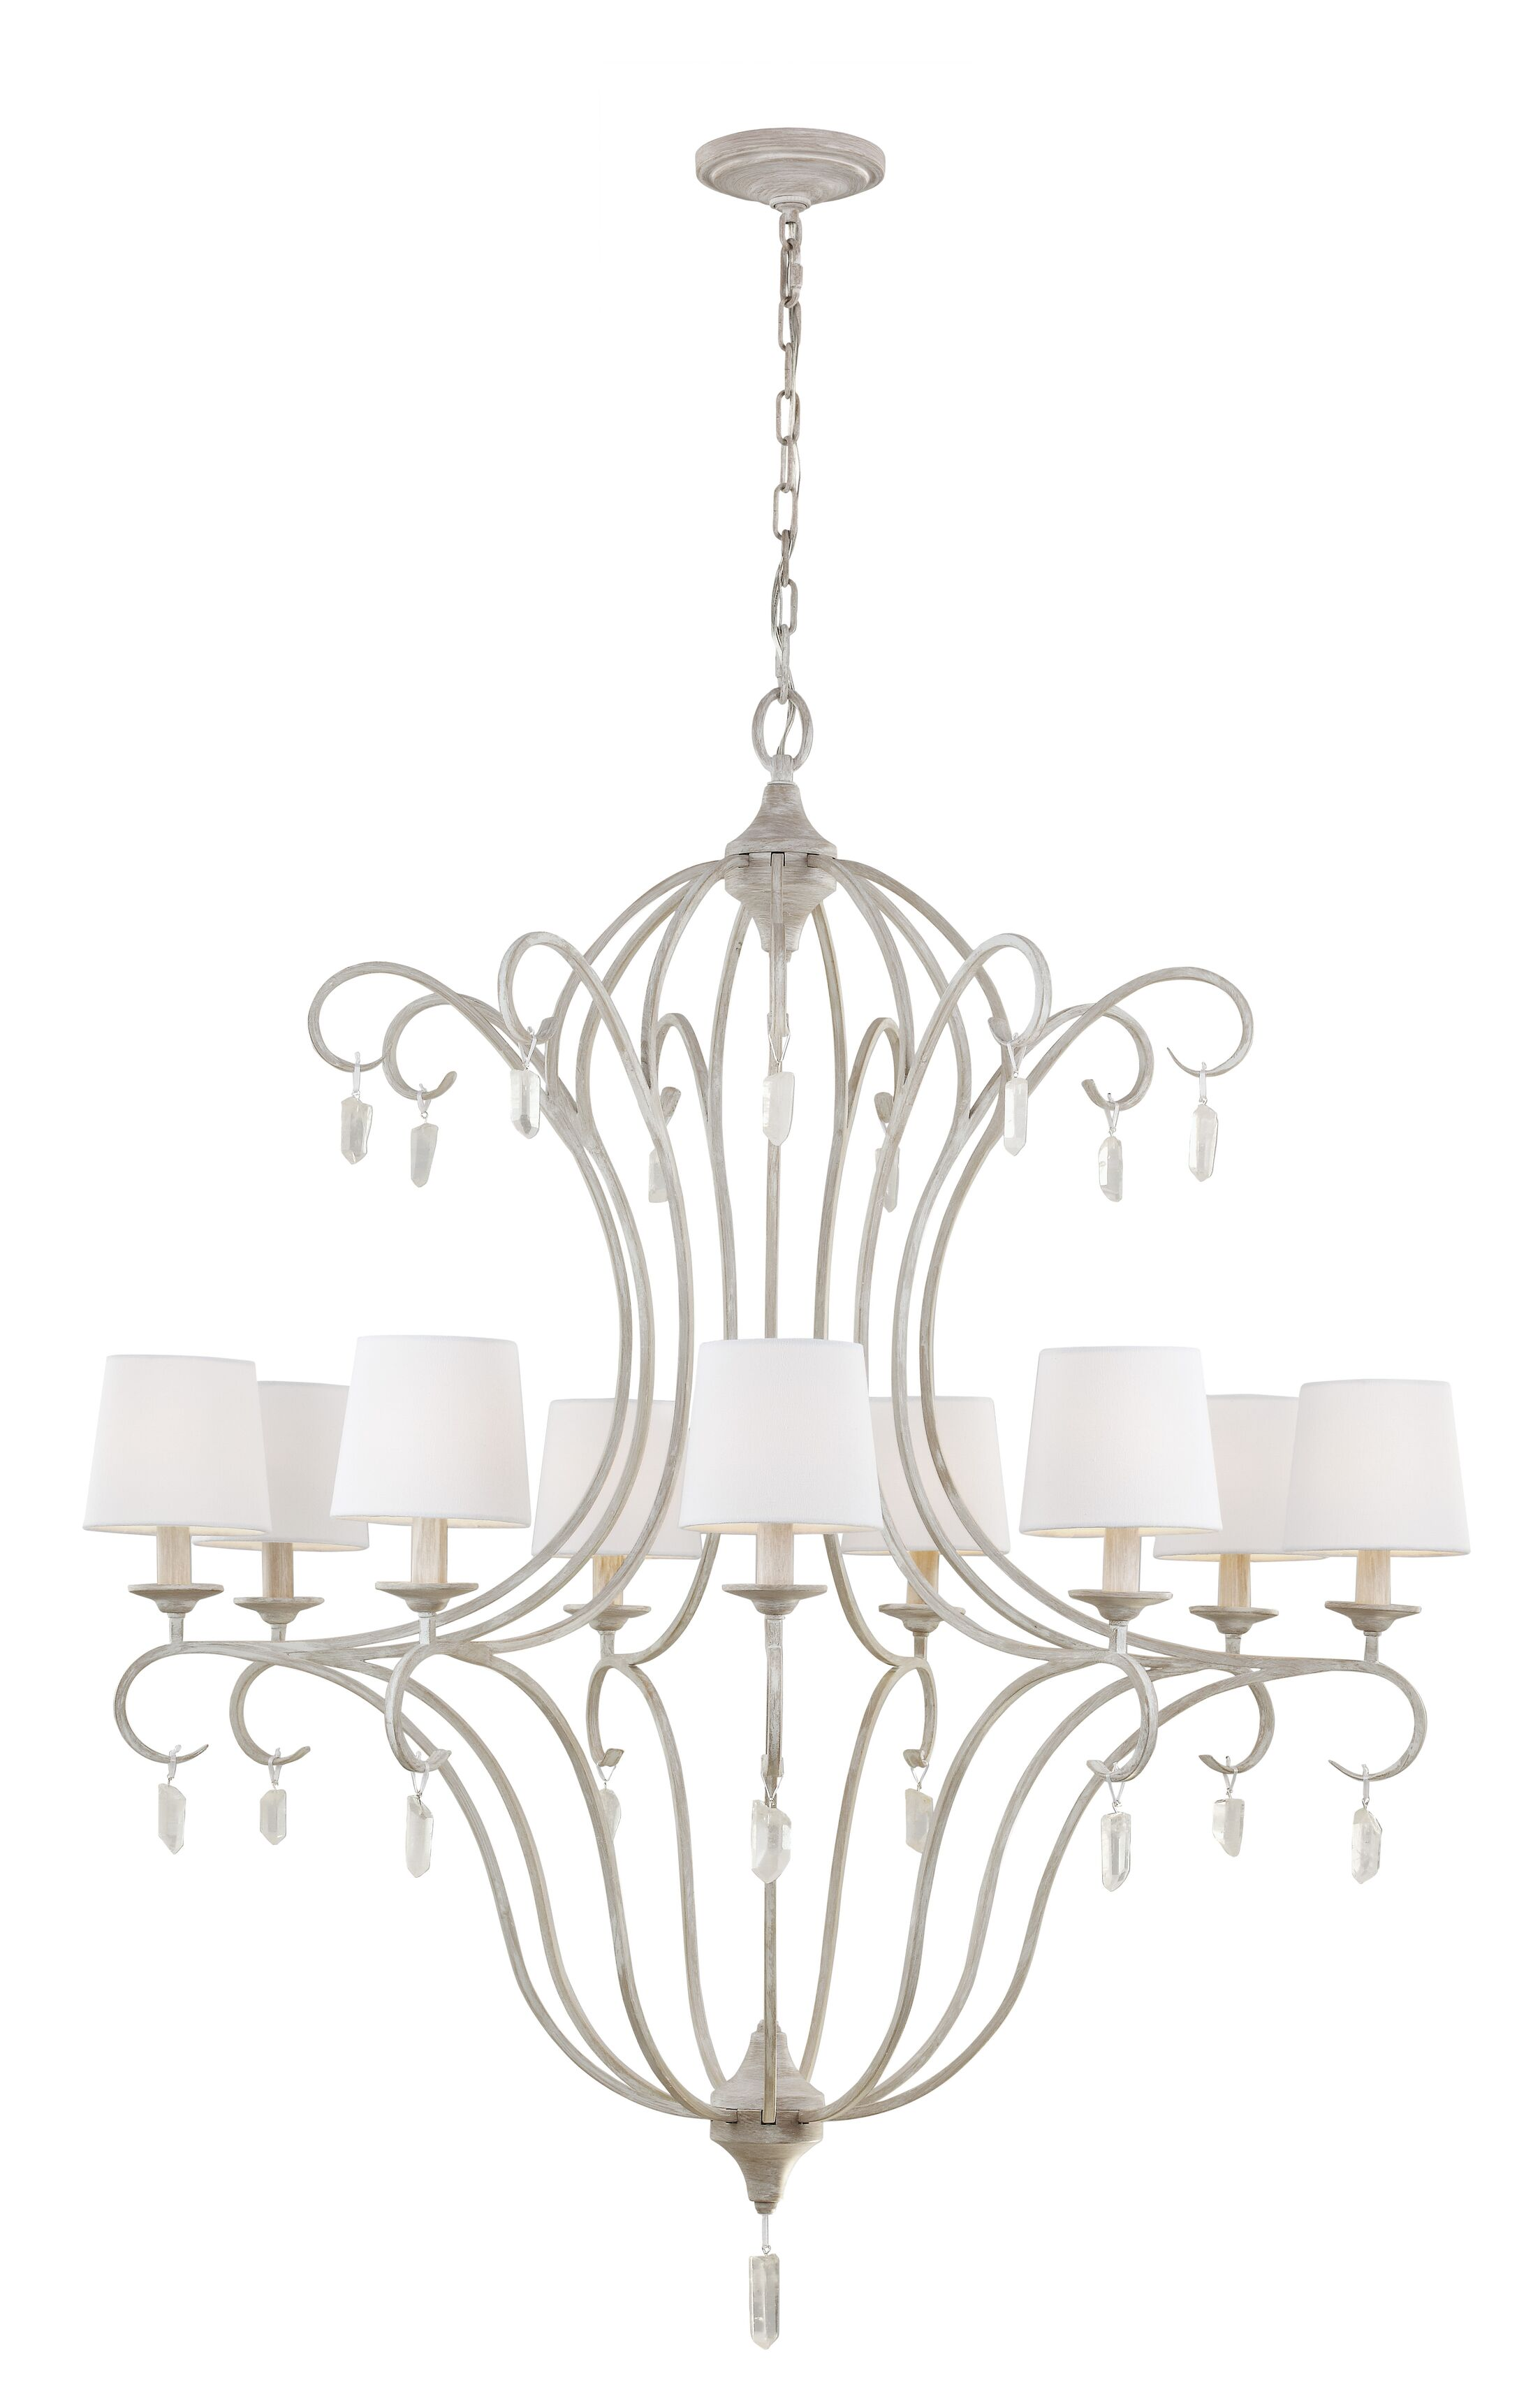 Caprice 9-Light Shaded Chandelier